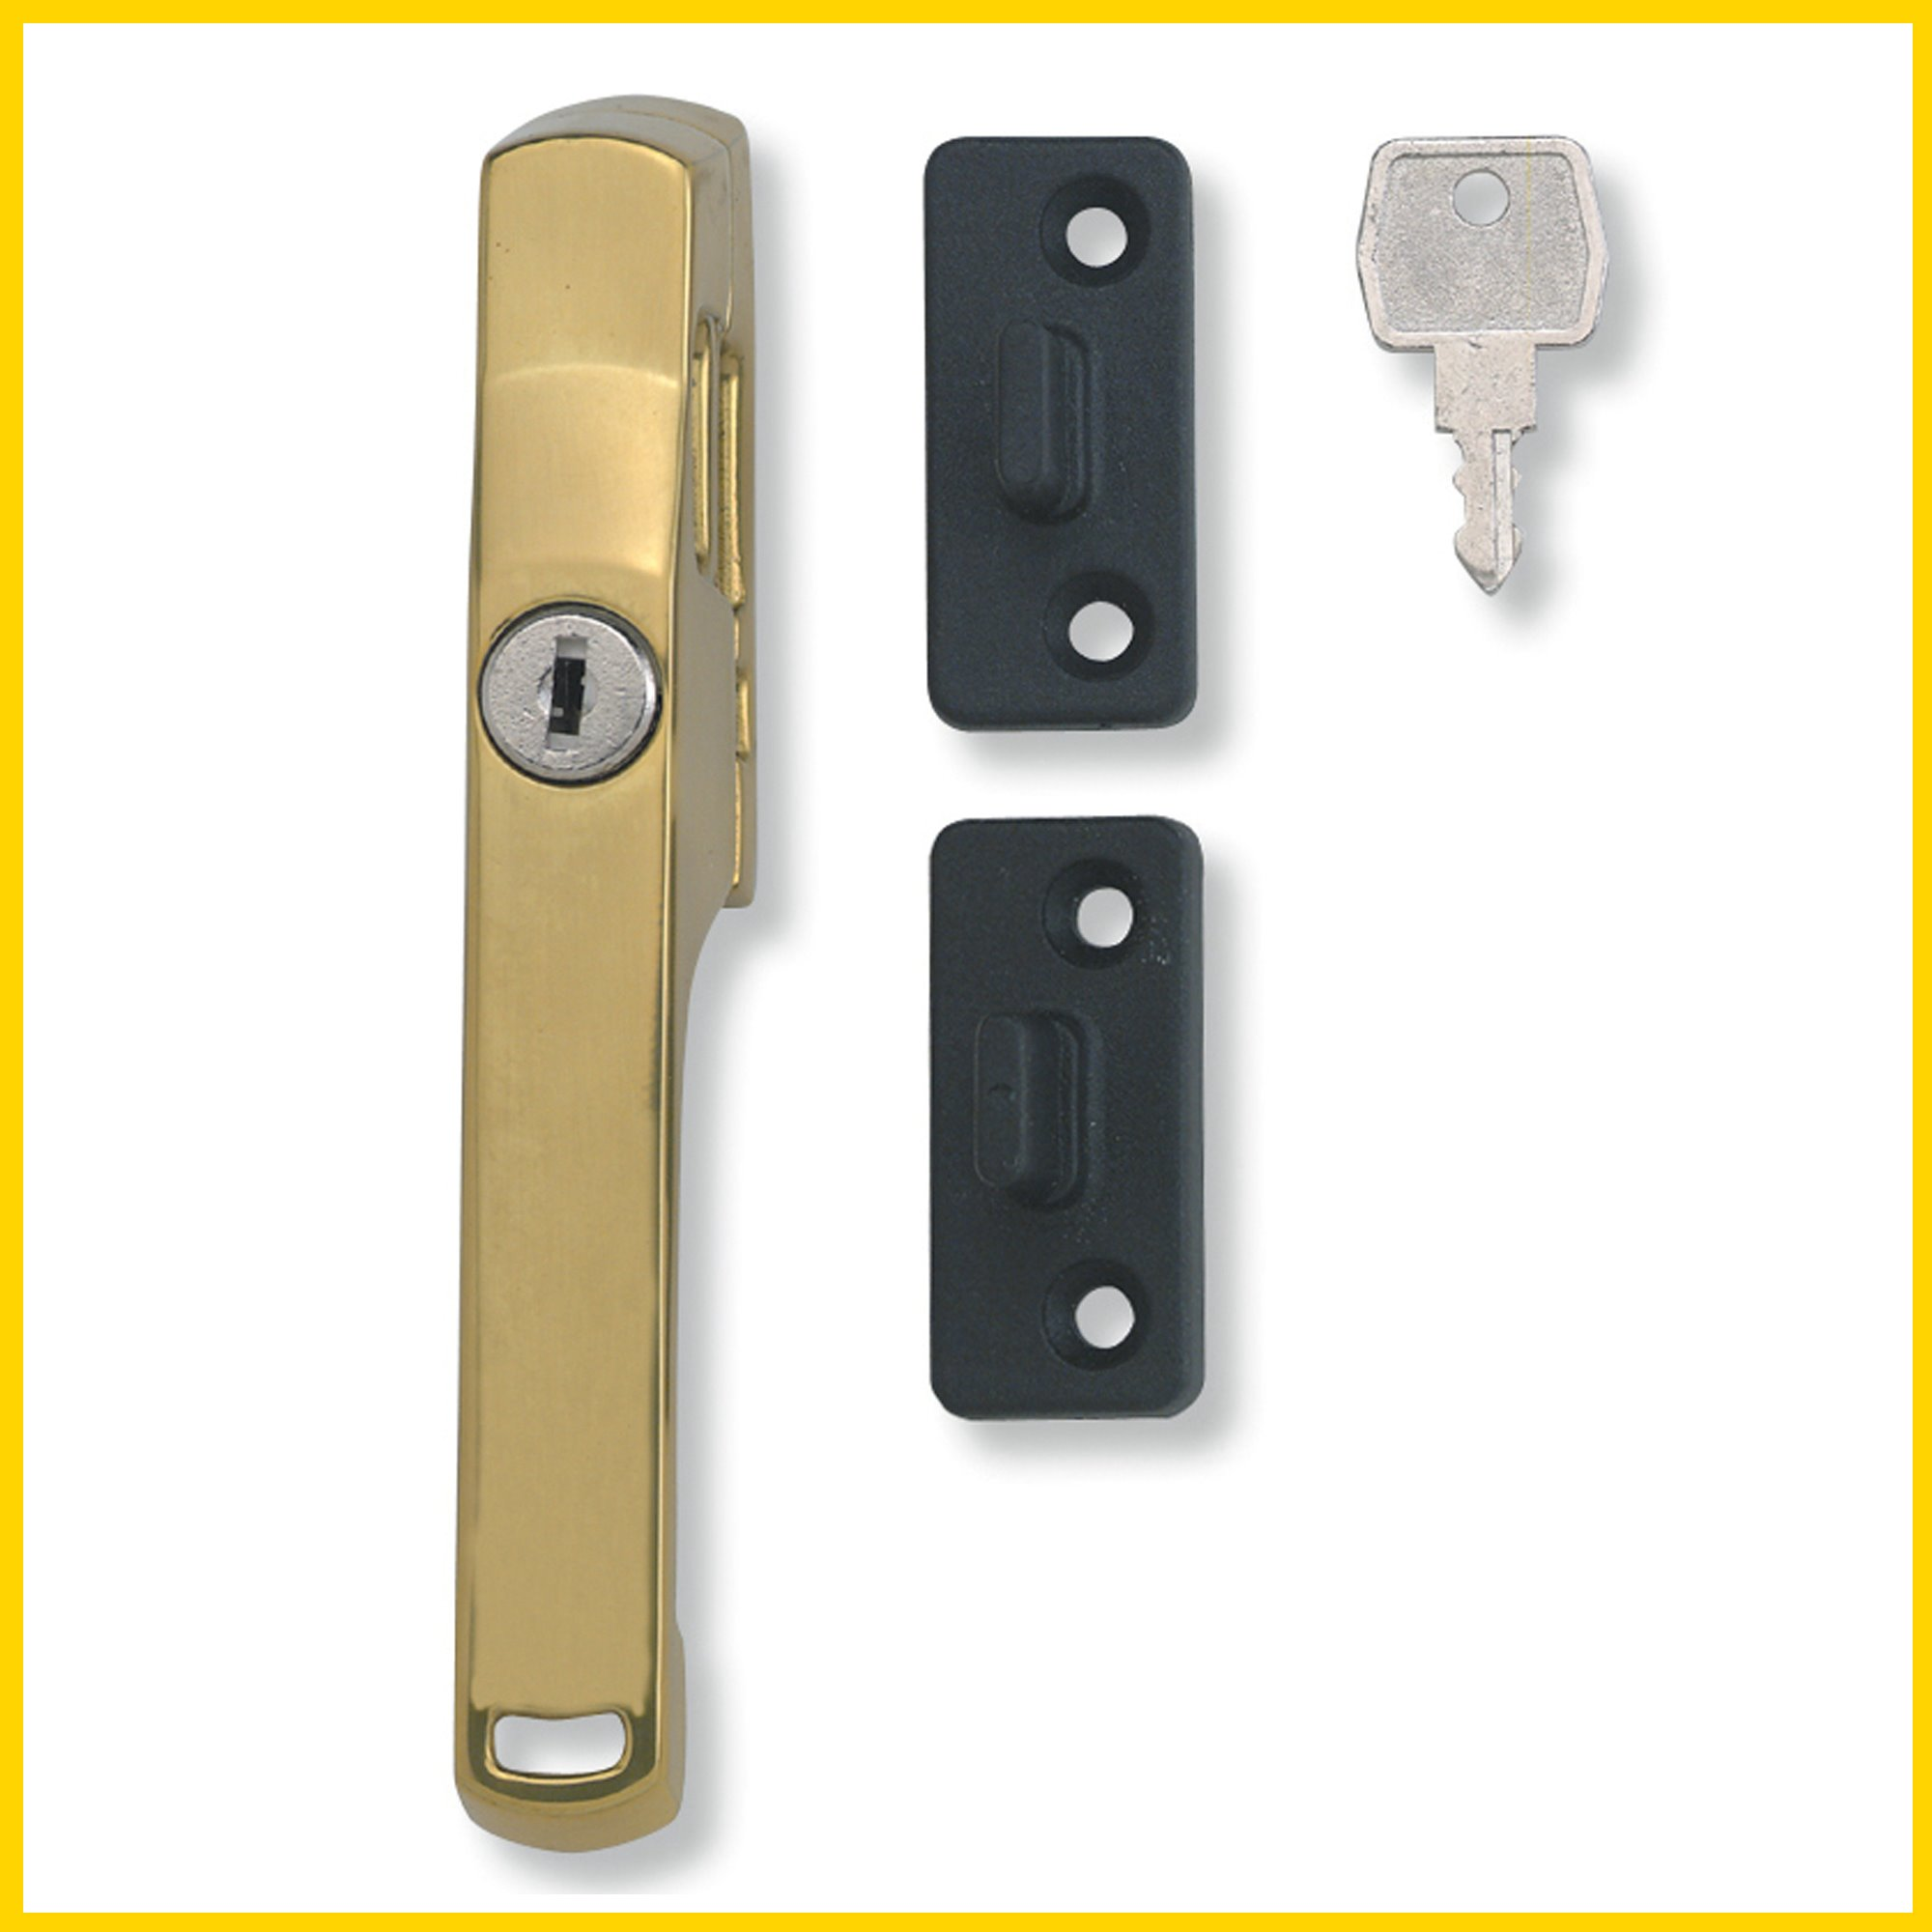 P115 - Lockable Window Handle